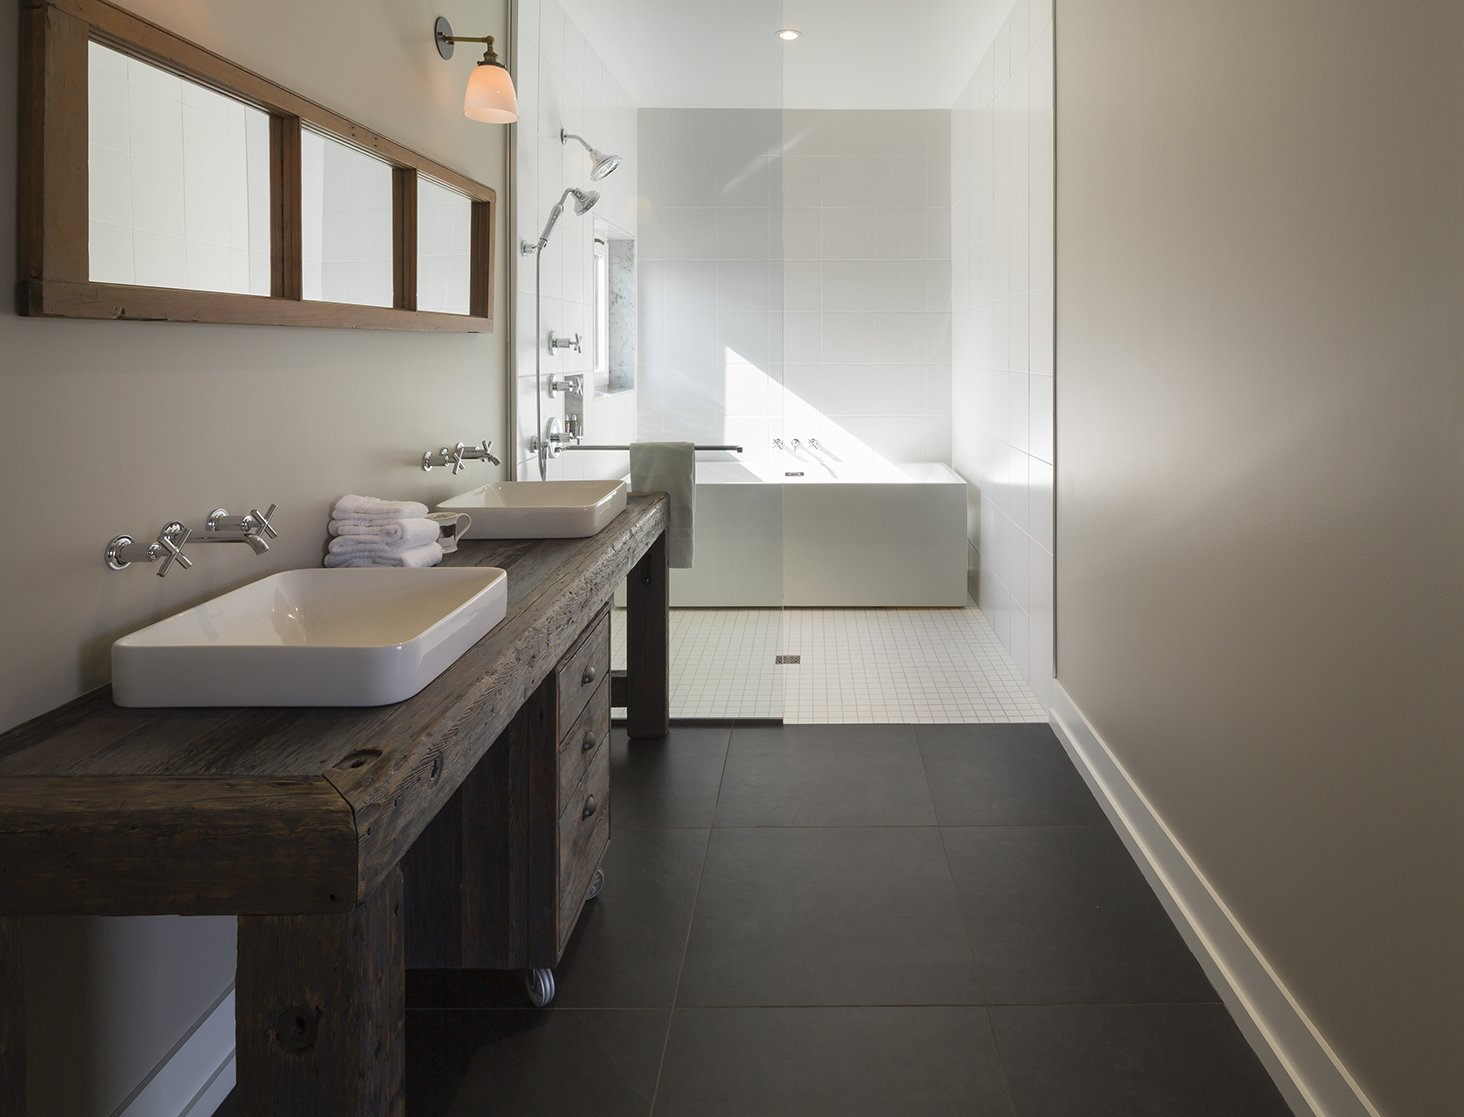 The master bathroom features sinks and fixtures by Kohler. The tub is by Aktuell. Tagged: Bath Room, Wood Counter, Open Shower, Freestanding Tub, and Vessel Sink.  Photo 9 of 12 in An Artist and Farmer Work With a Toronto-Based Studio to Build a Barn-Inspired Home